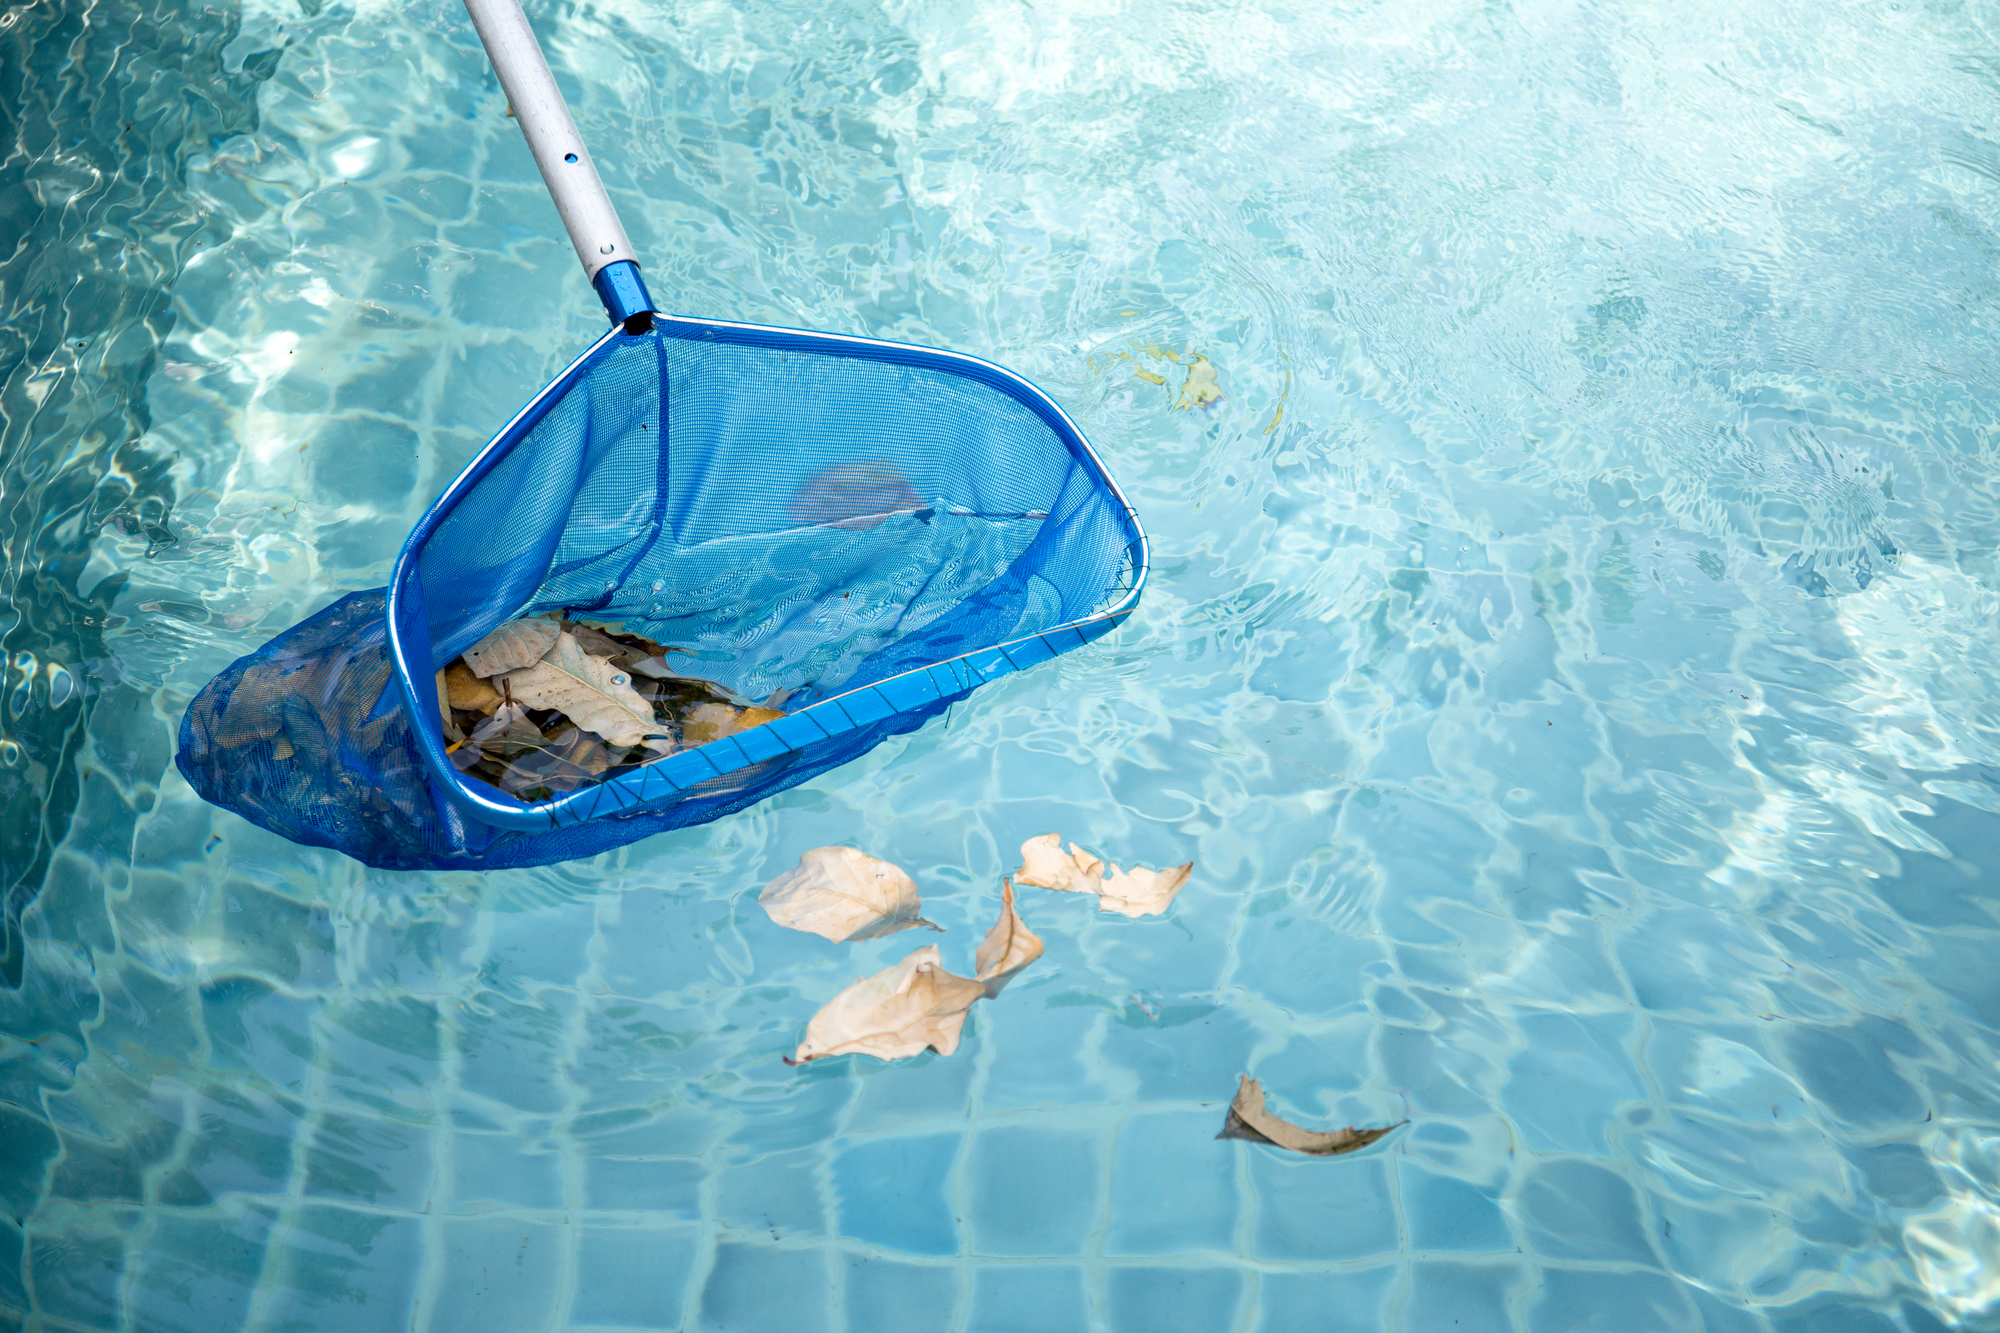 7 Steps to Winterizing Your Pool - A-1 Electric Motor ...